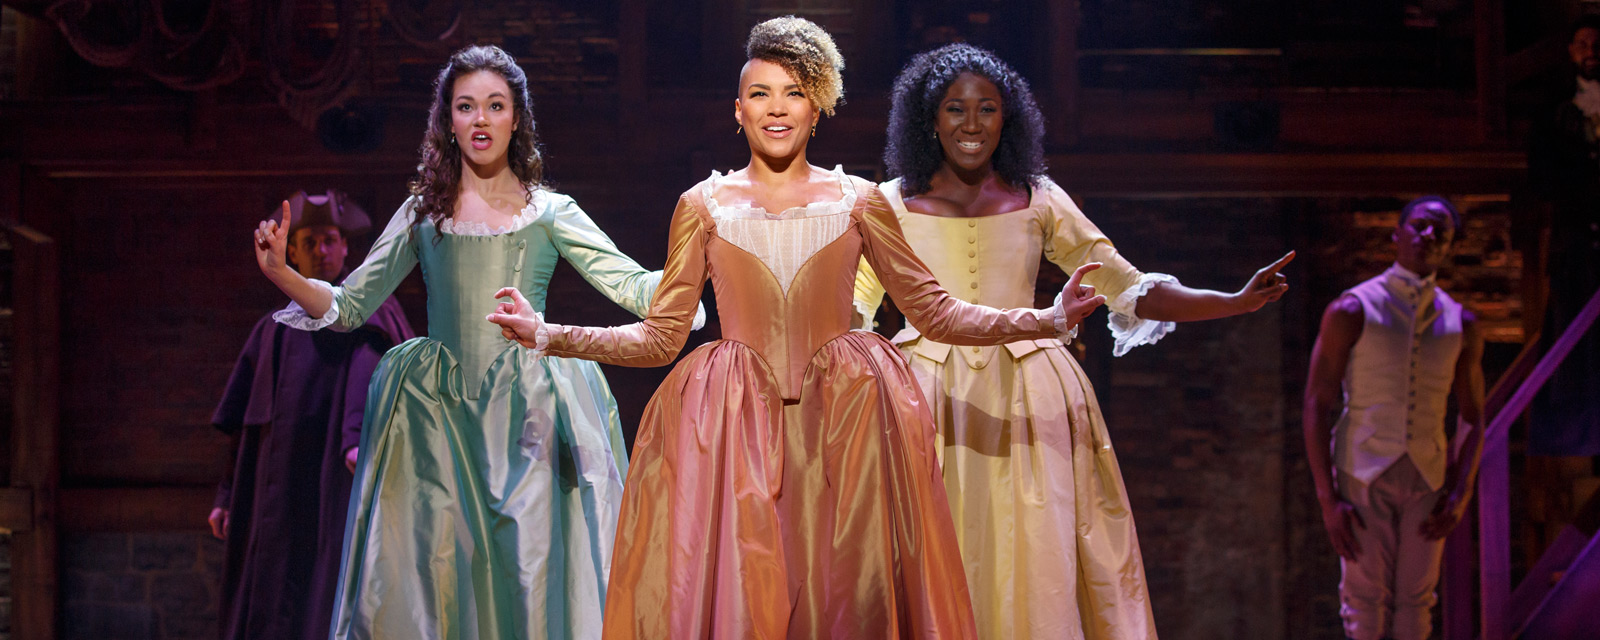 The Schuyler Sisters in the San Francisco production of Hamilton.